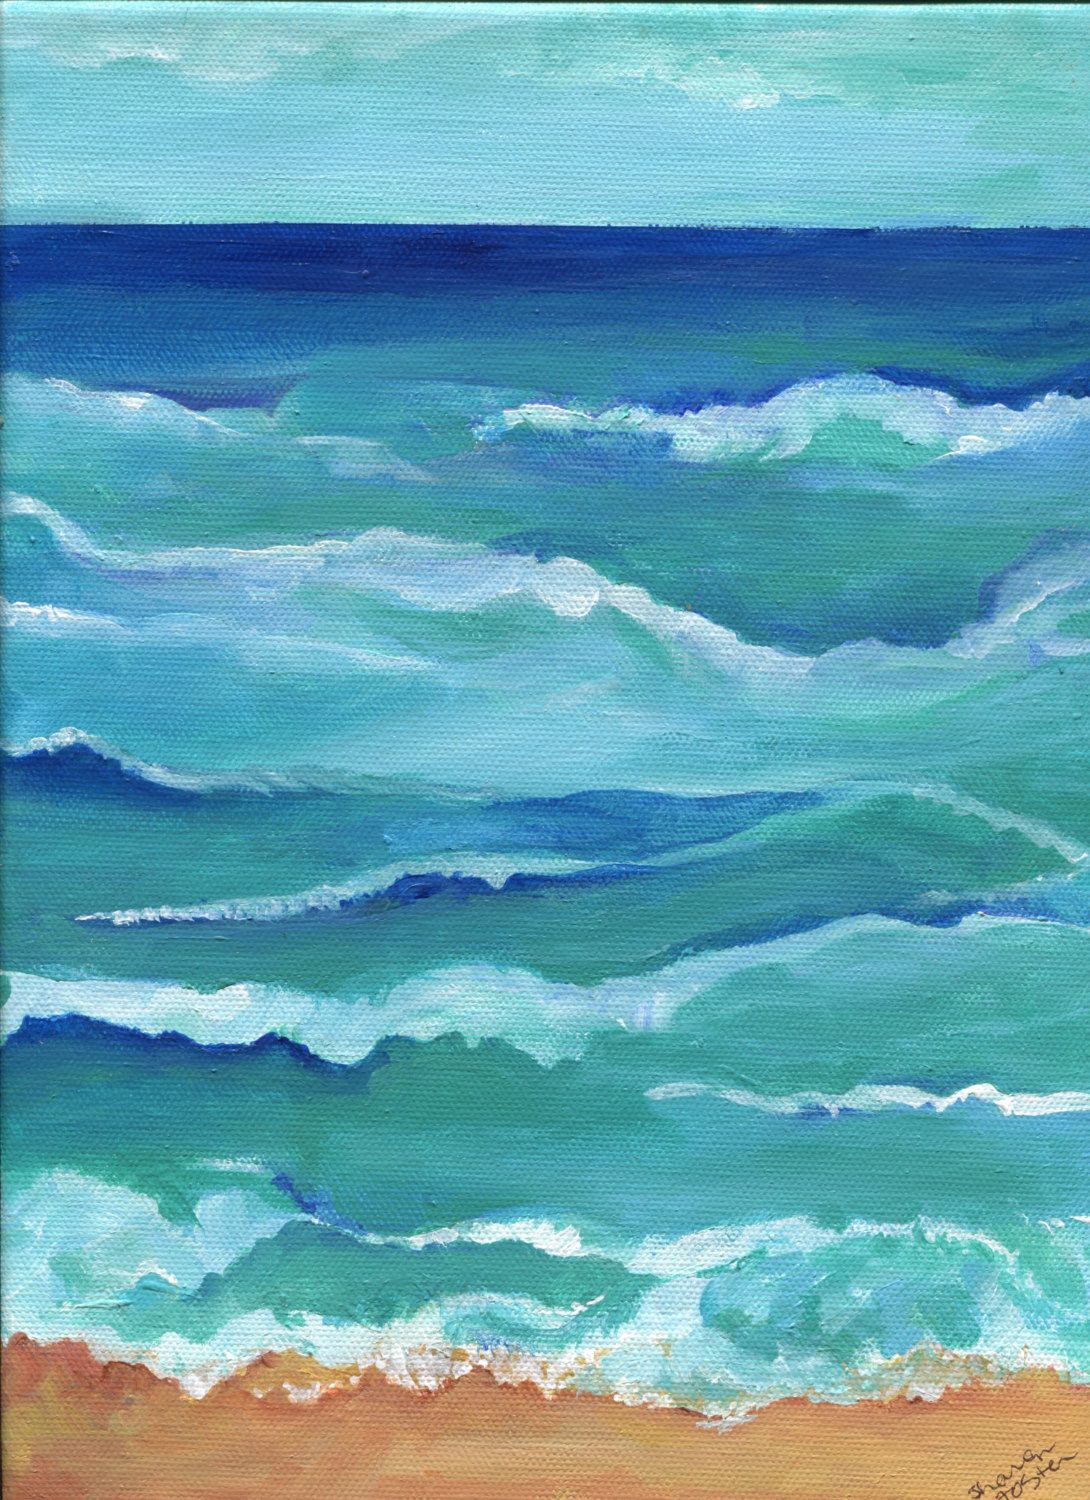 Seascape Acrylic Painting Ocean Art 9 X 12 Vertical Original